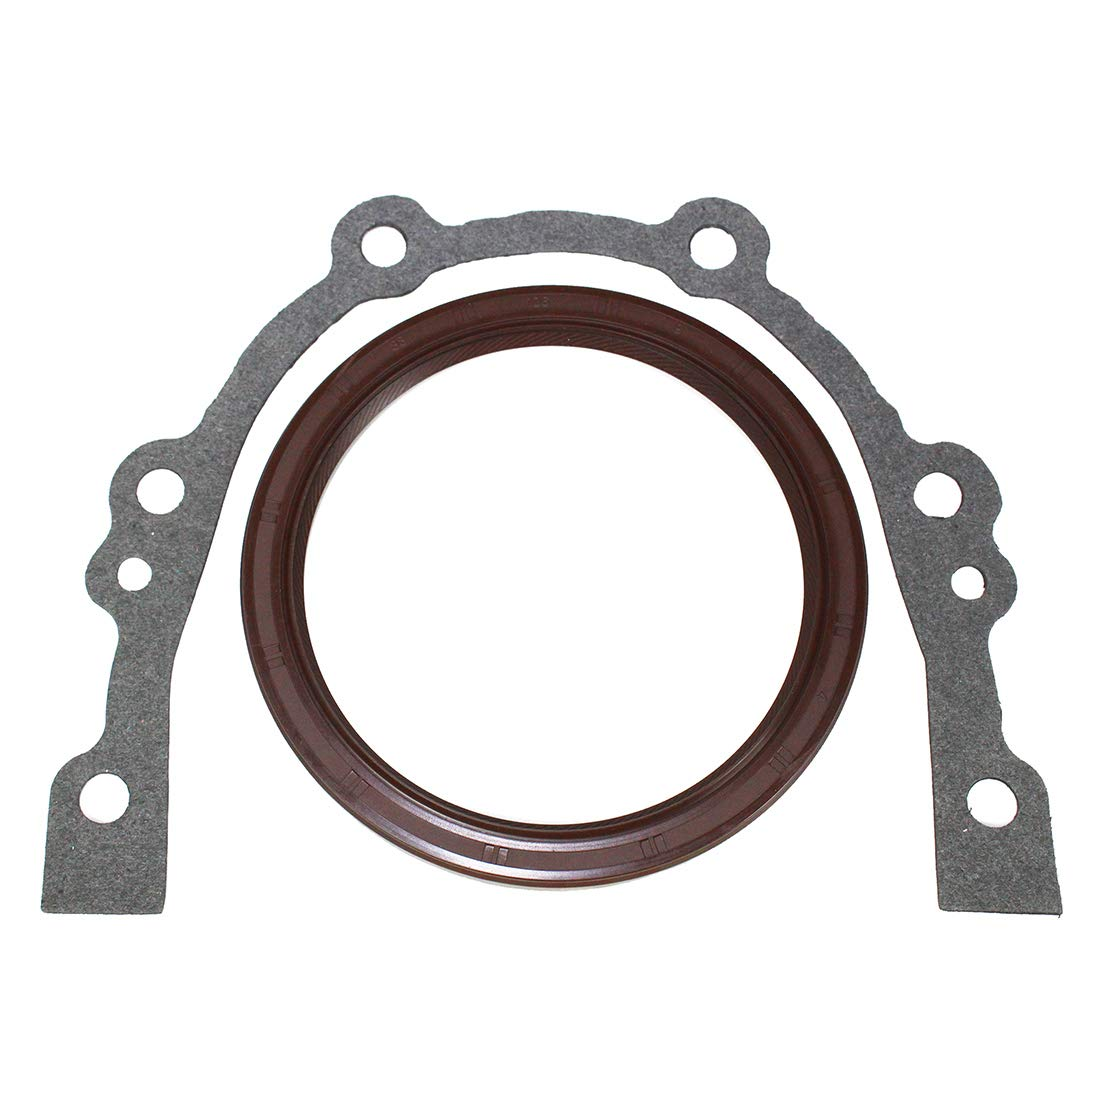 DNJ Engine Components RM957 Crankshaft Seal